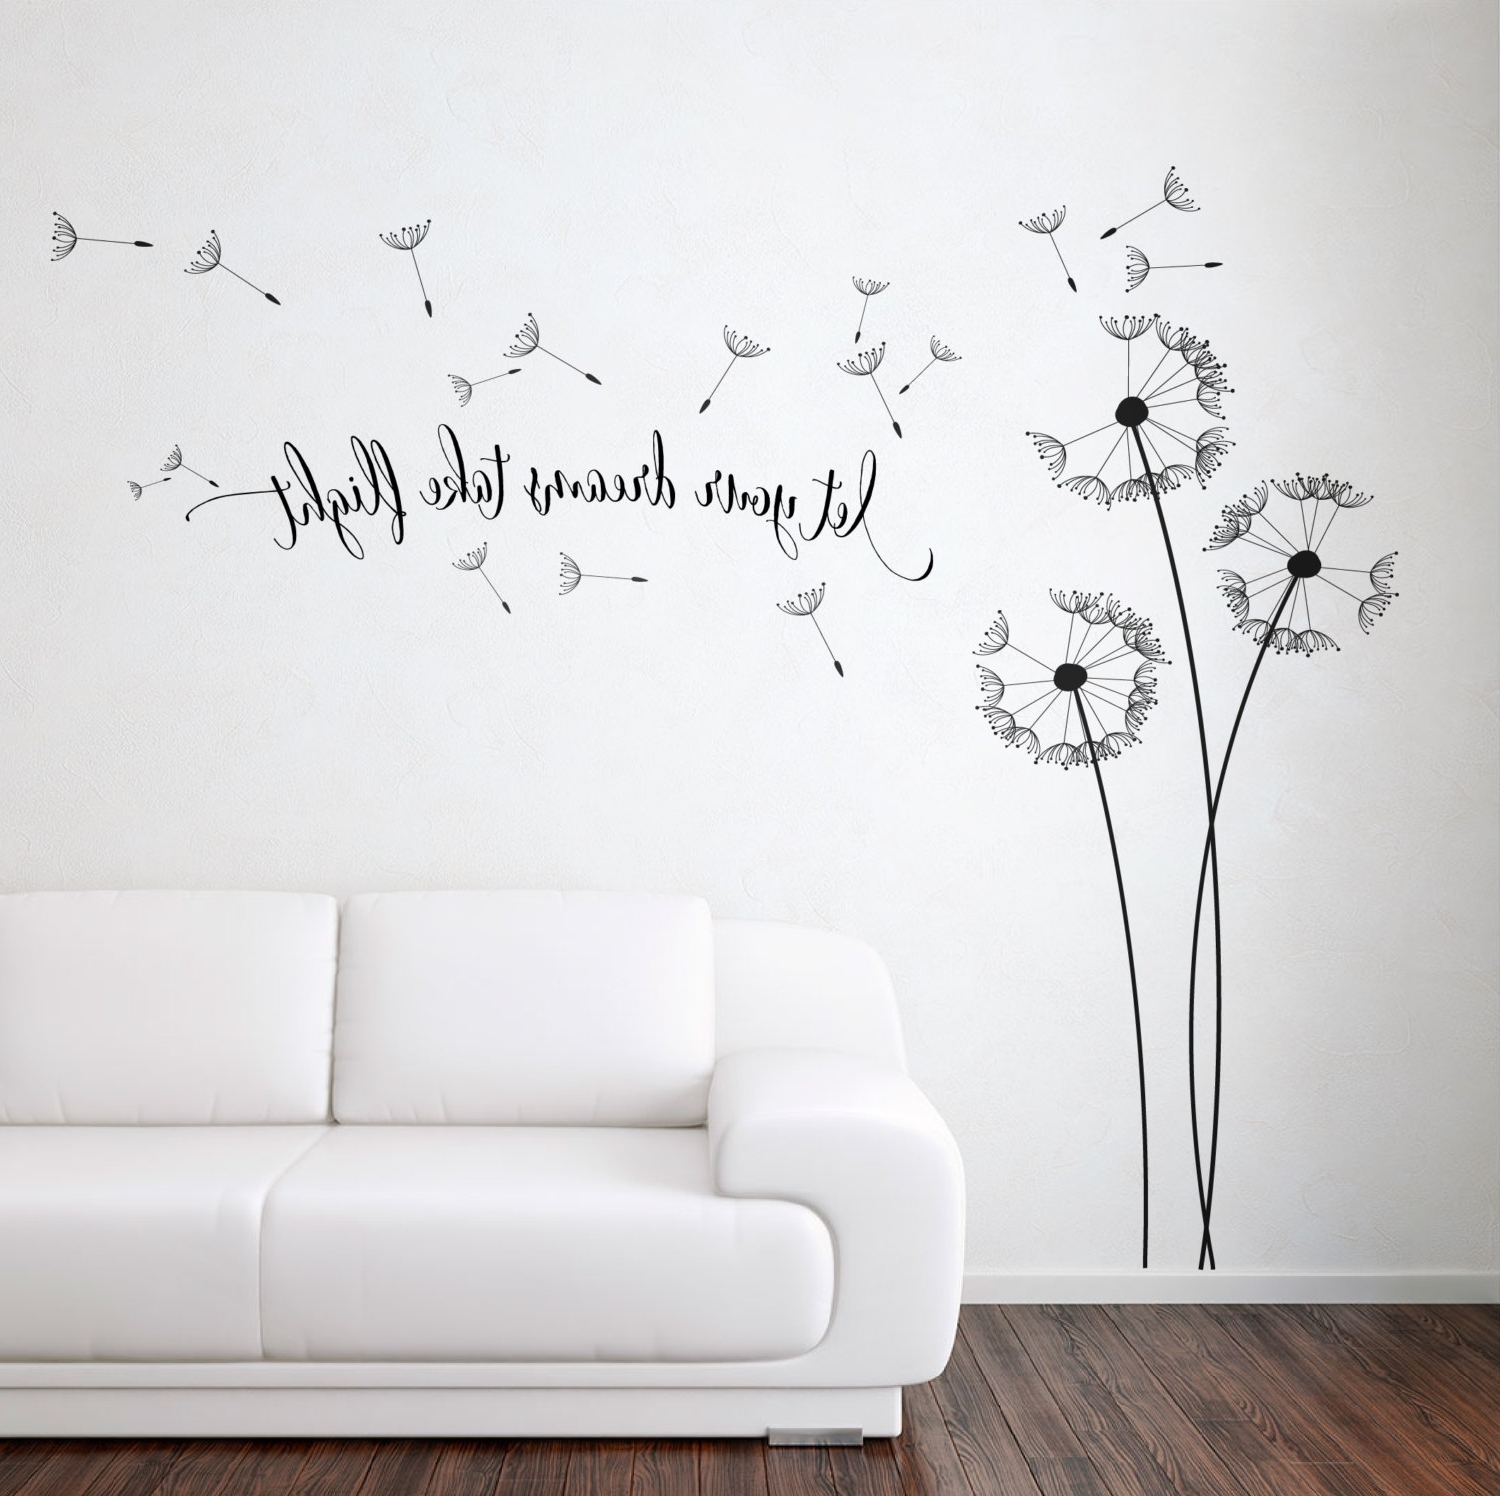 2018 Dandelion Wall Art Pertaining To Dandelion Blowing With Quote Wall Sticker, Floral Sticker, Flower (View 1 of 15)